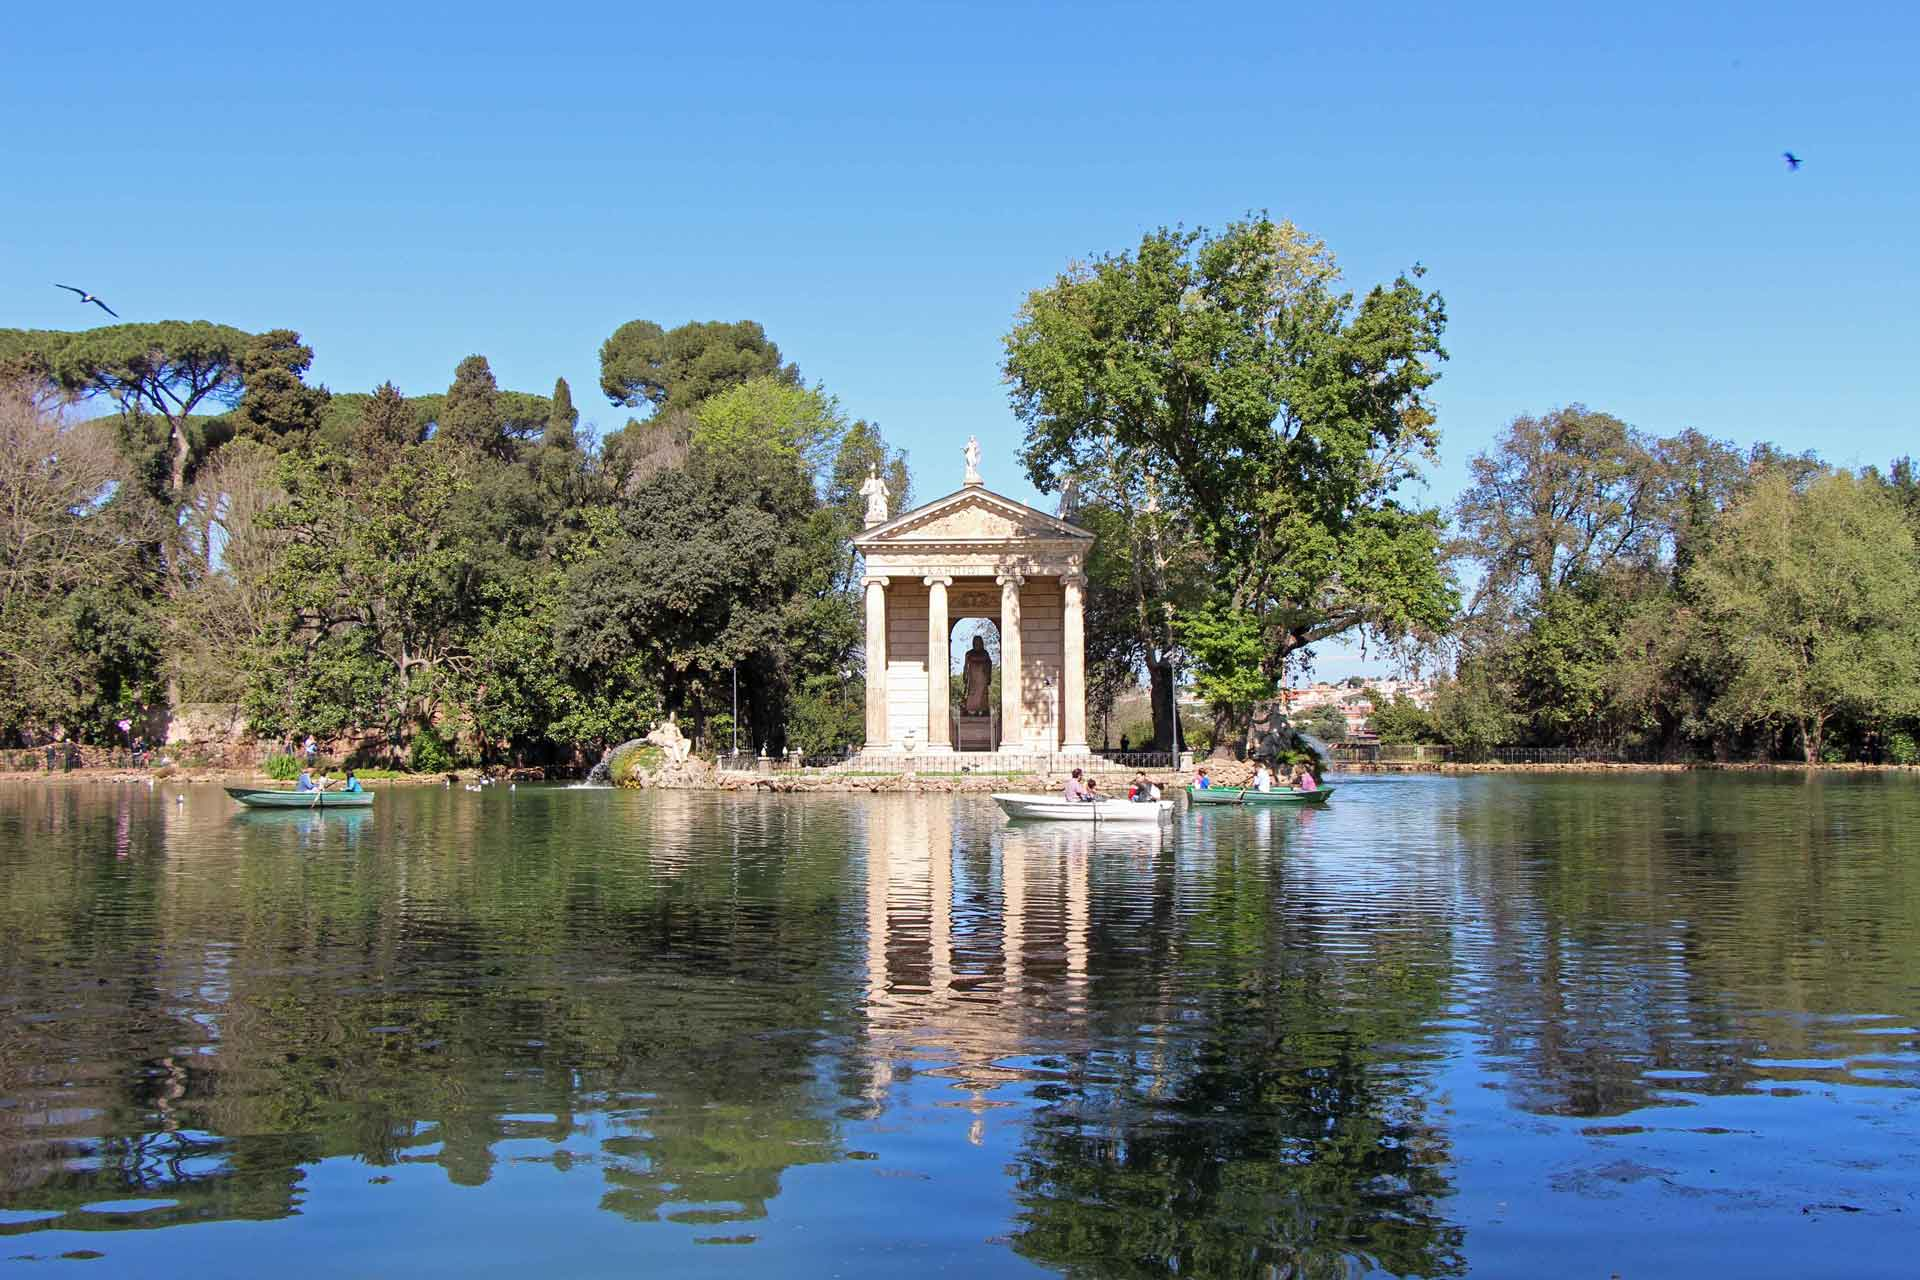 Villa Borghese Rome Italy with baby